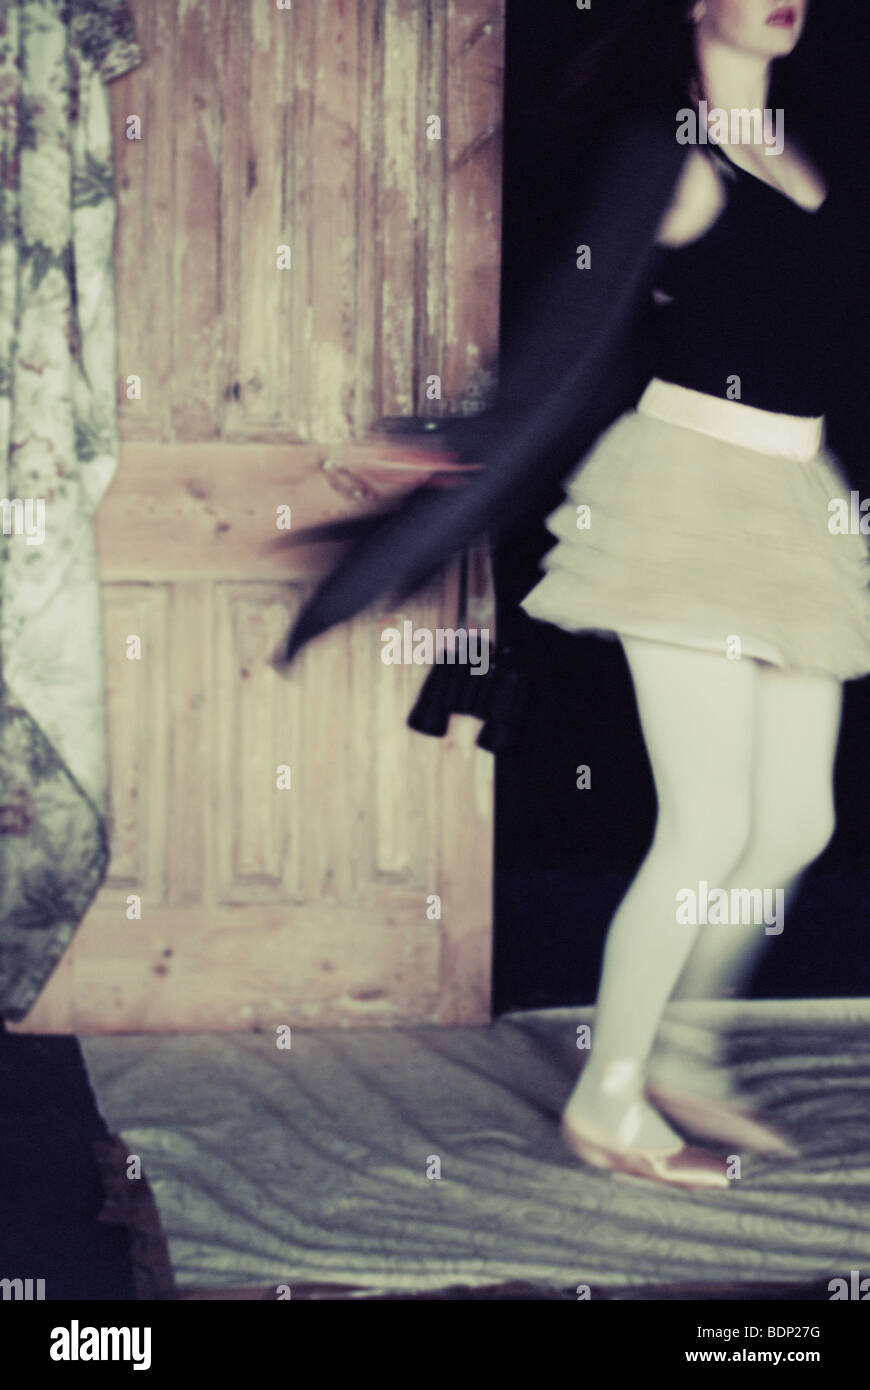 A young woman wearing a white short skirt and black jacket spinning around - Stock Image